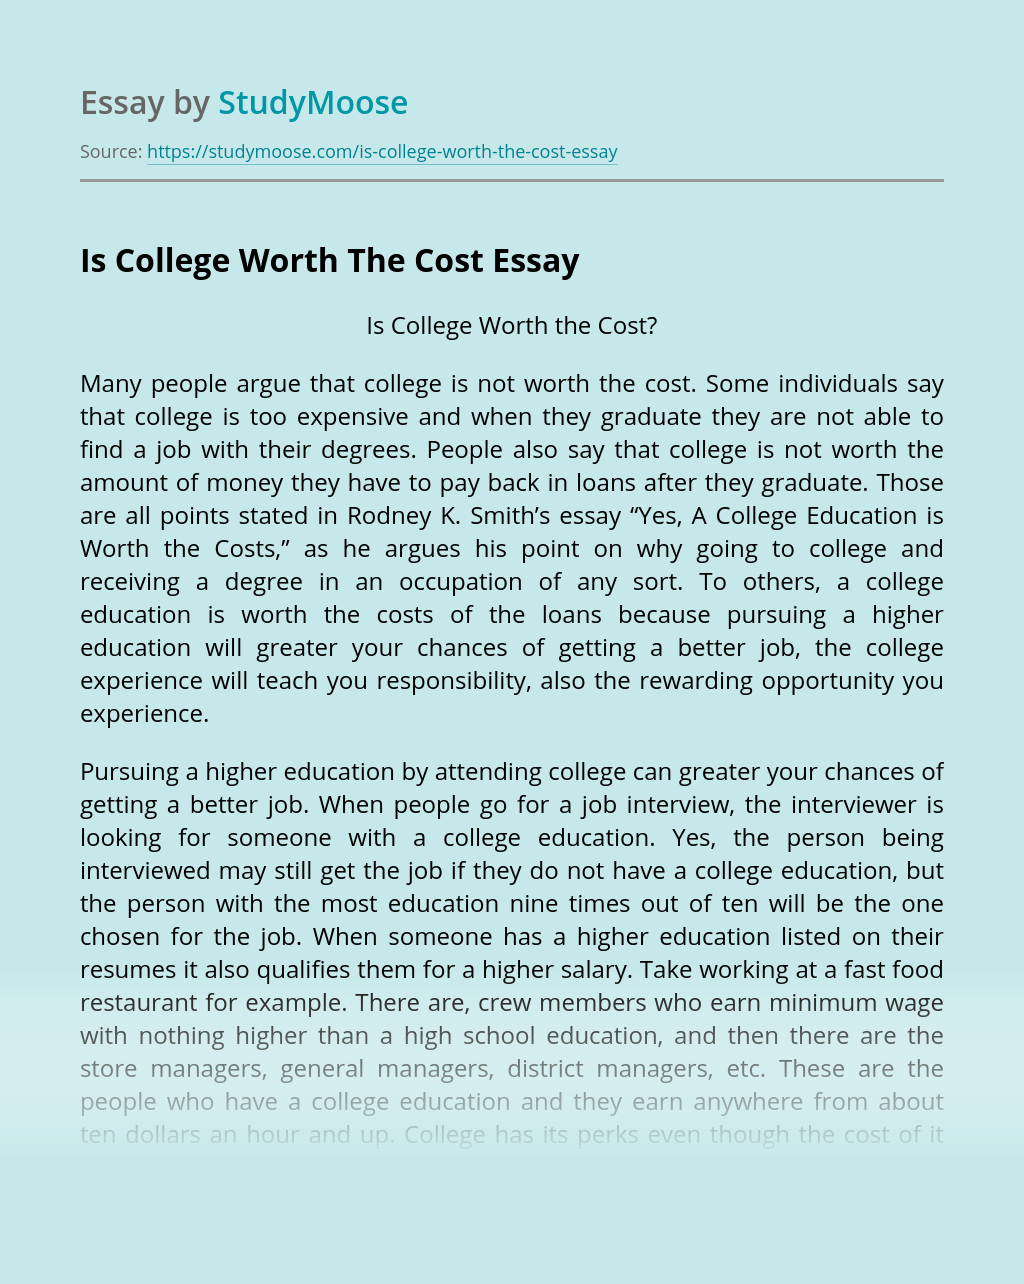 Is College Worth The Cost